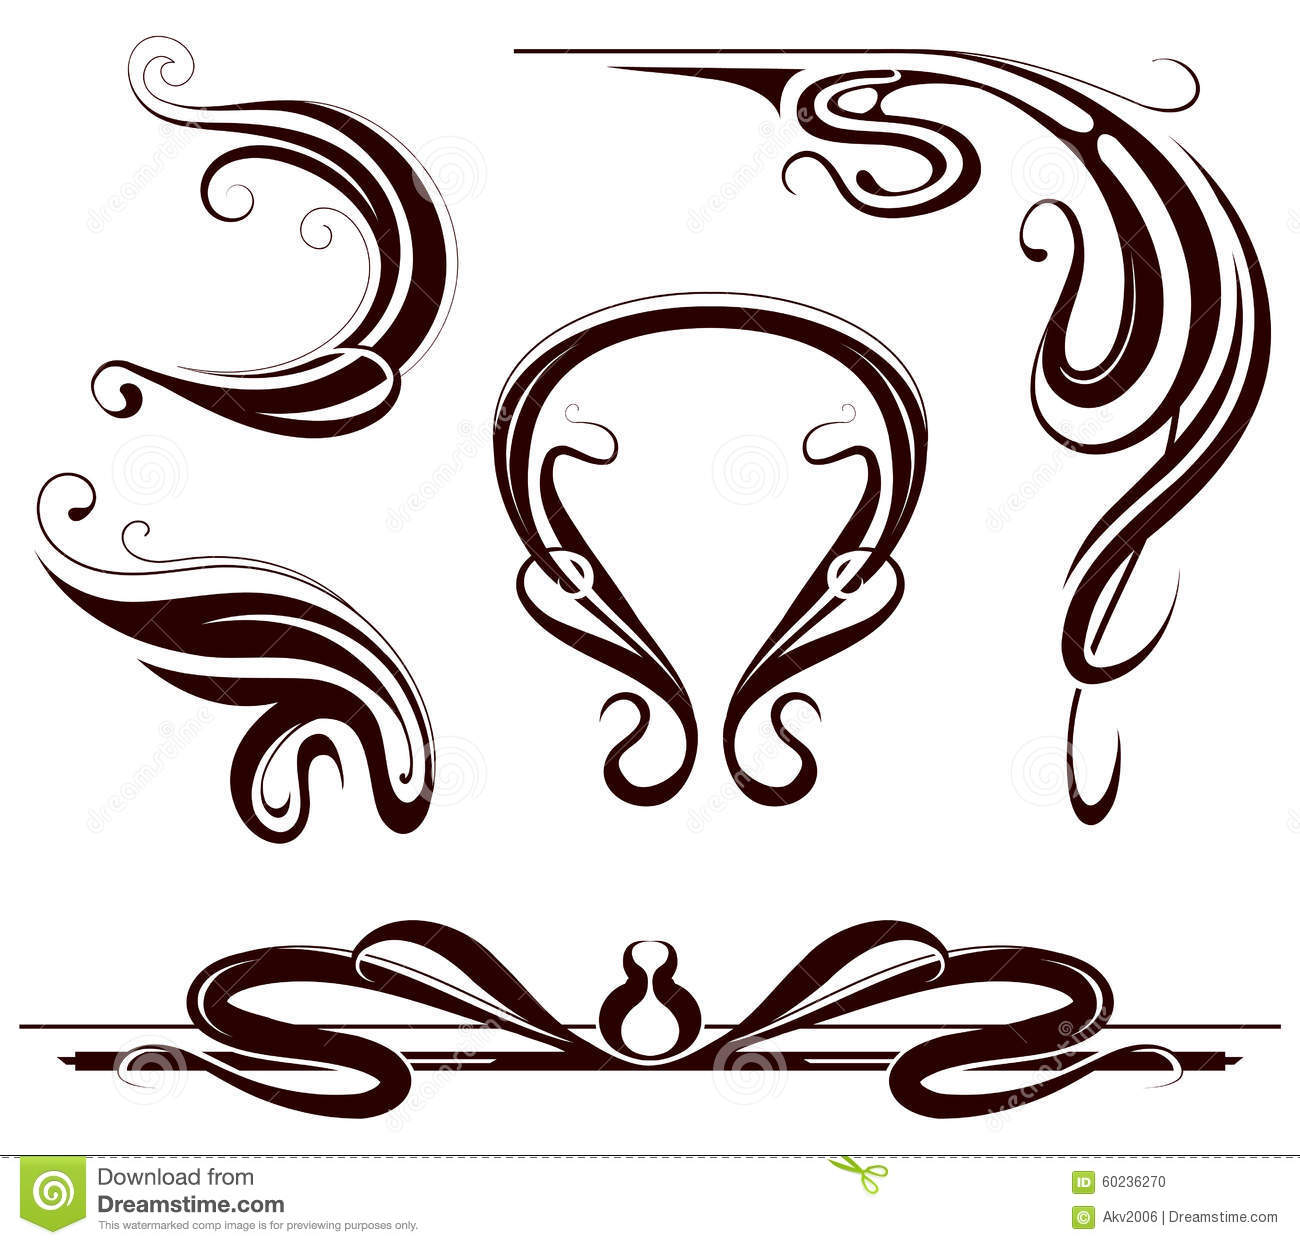 Art Deco Design Elements art nouveau design elements stock photos - image: 9373873